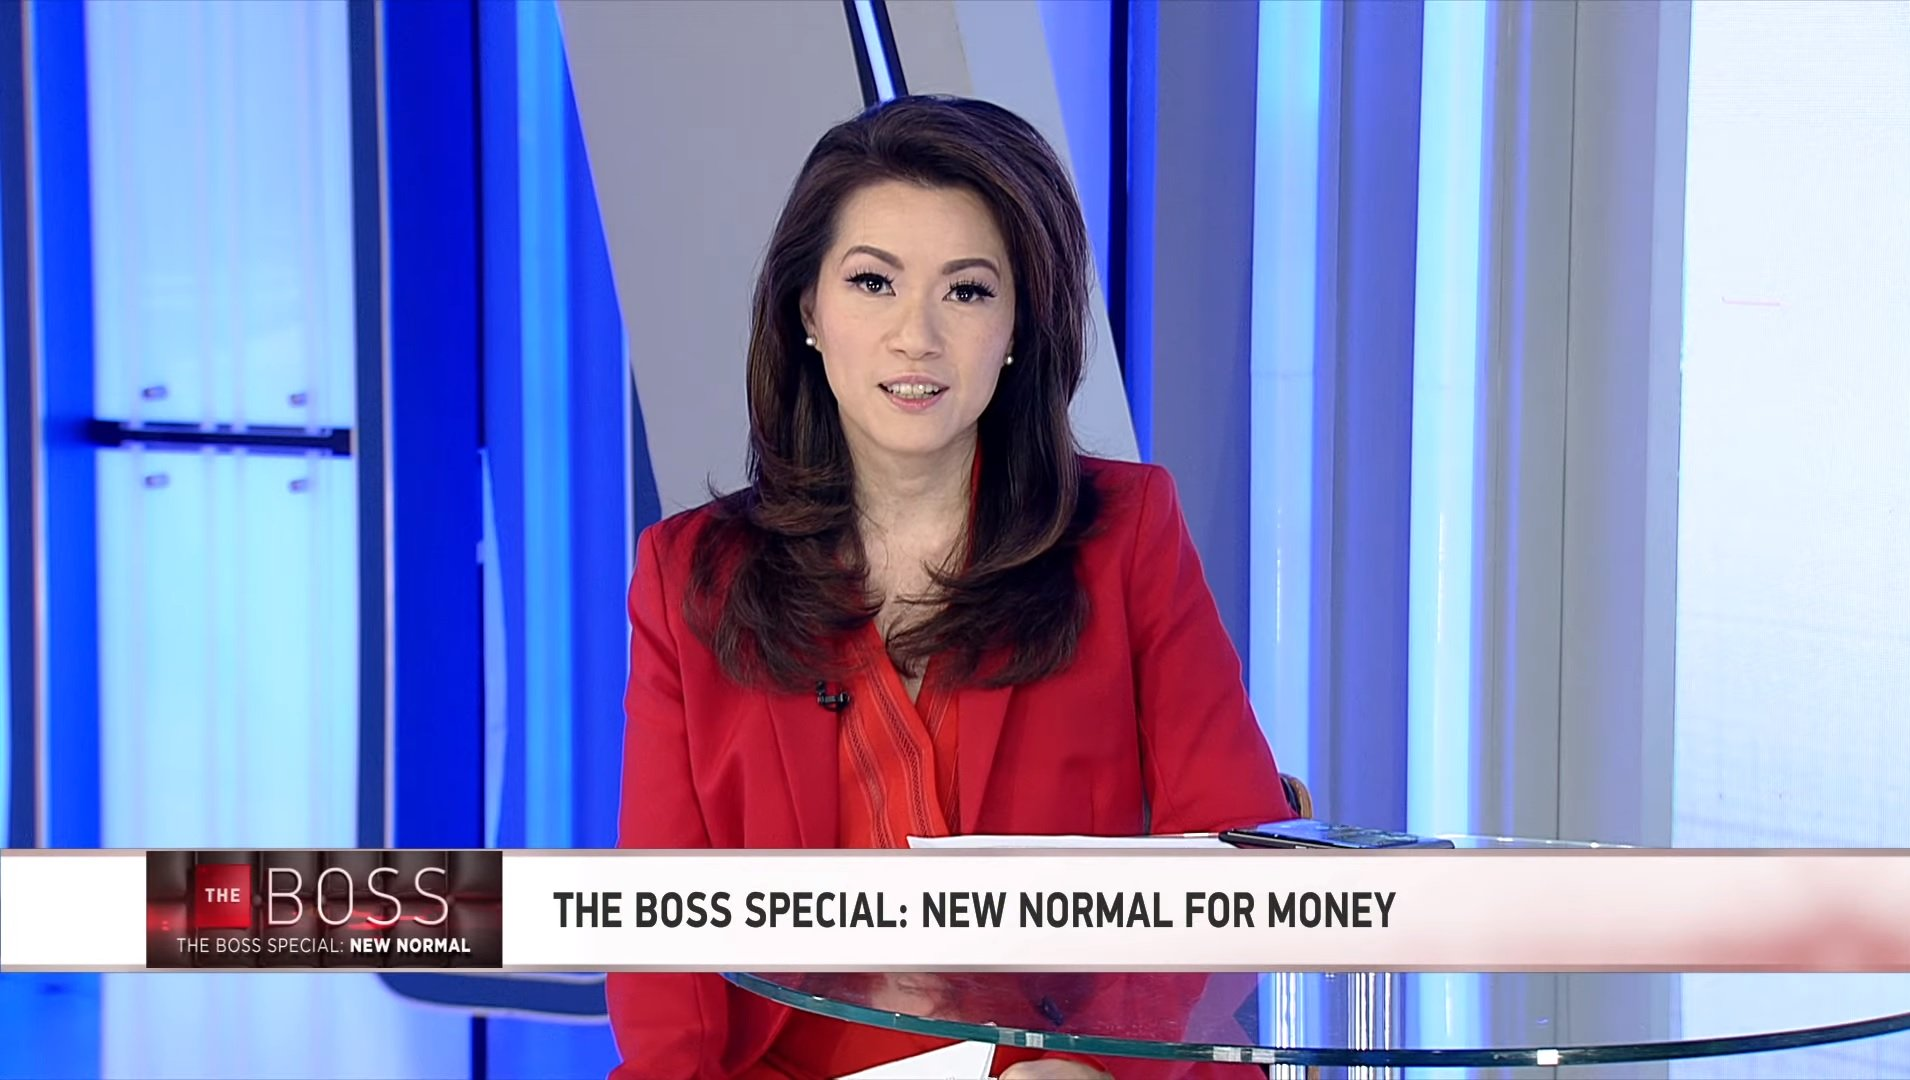 ANC launches TV special, new show tackling PH's 'new normal'